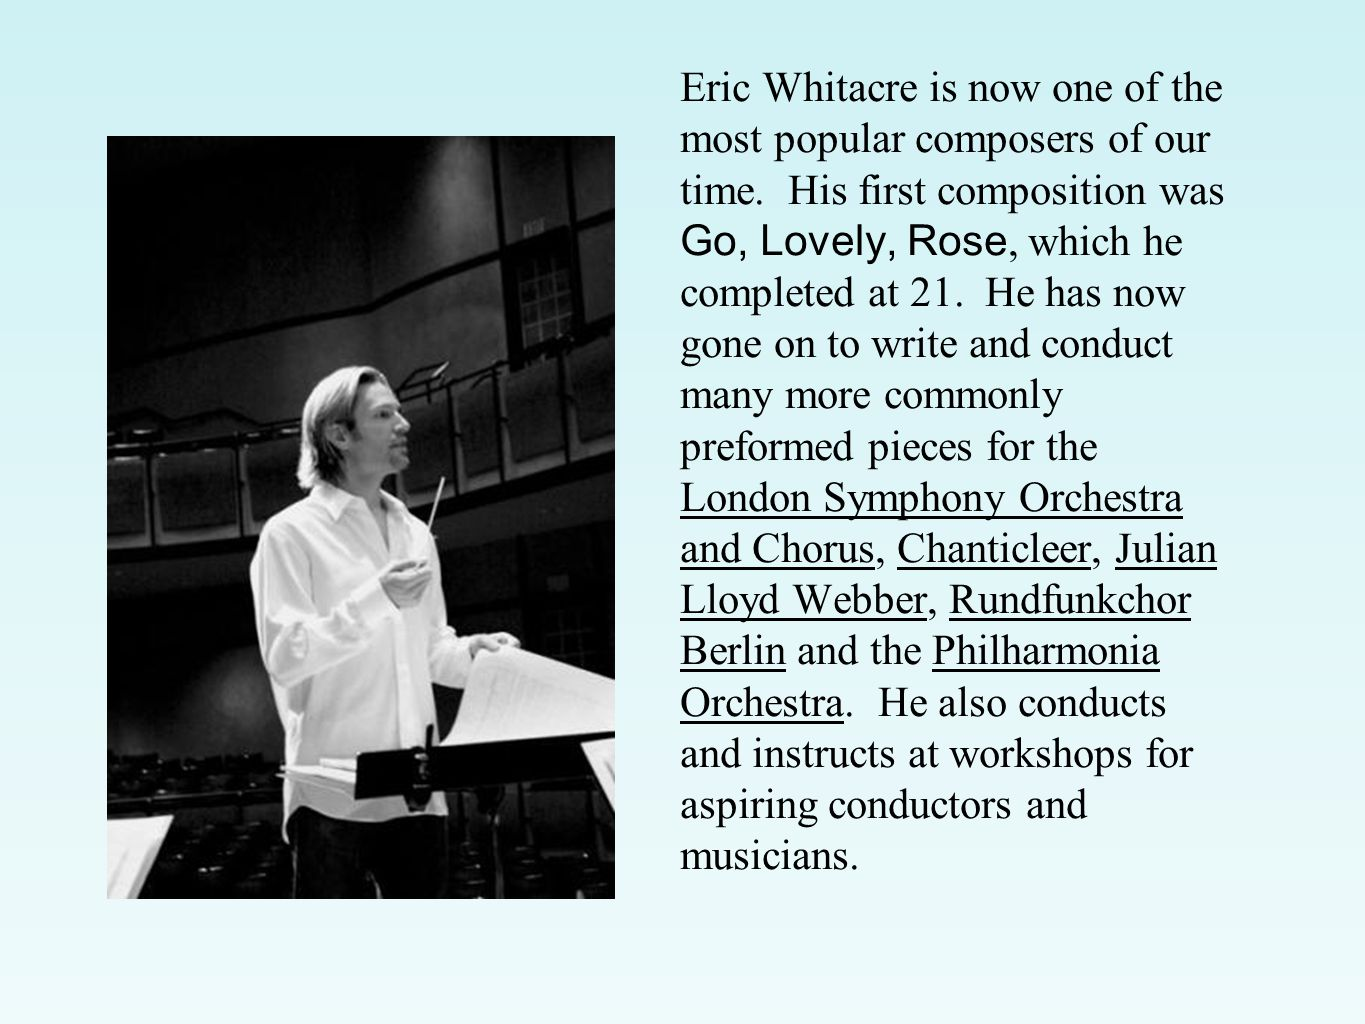 Eric Whitacre is now one of the most popular composers of our time